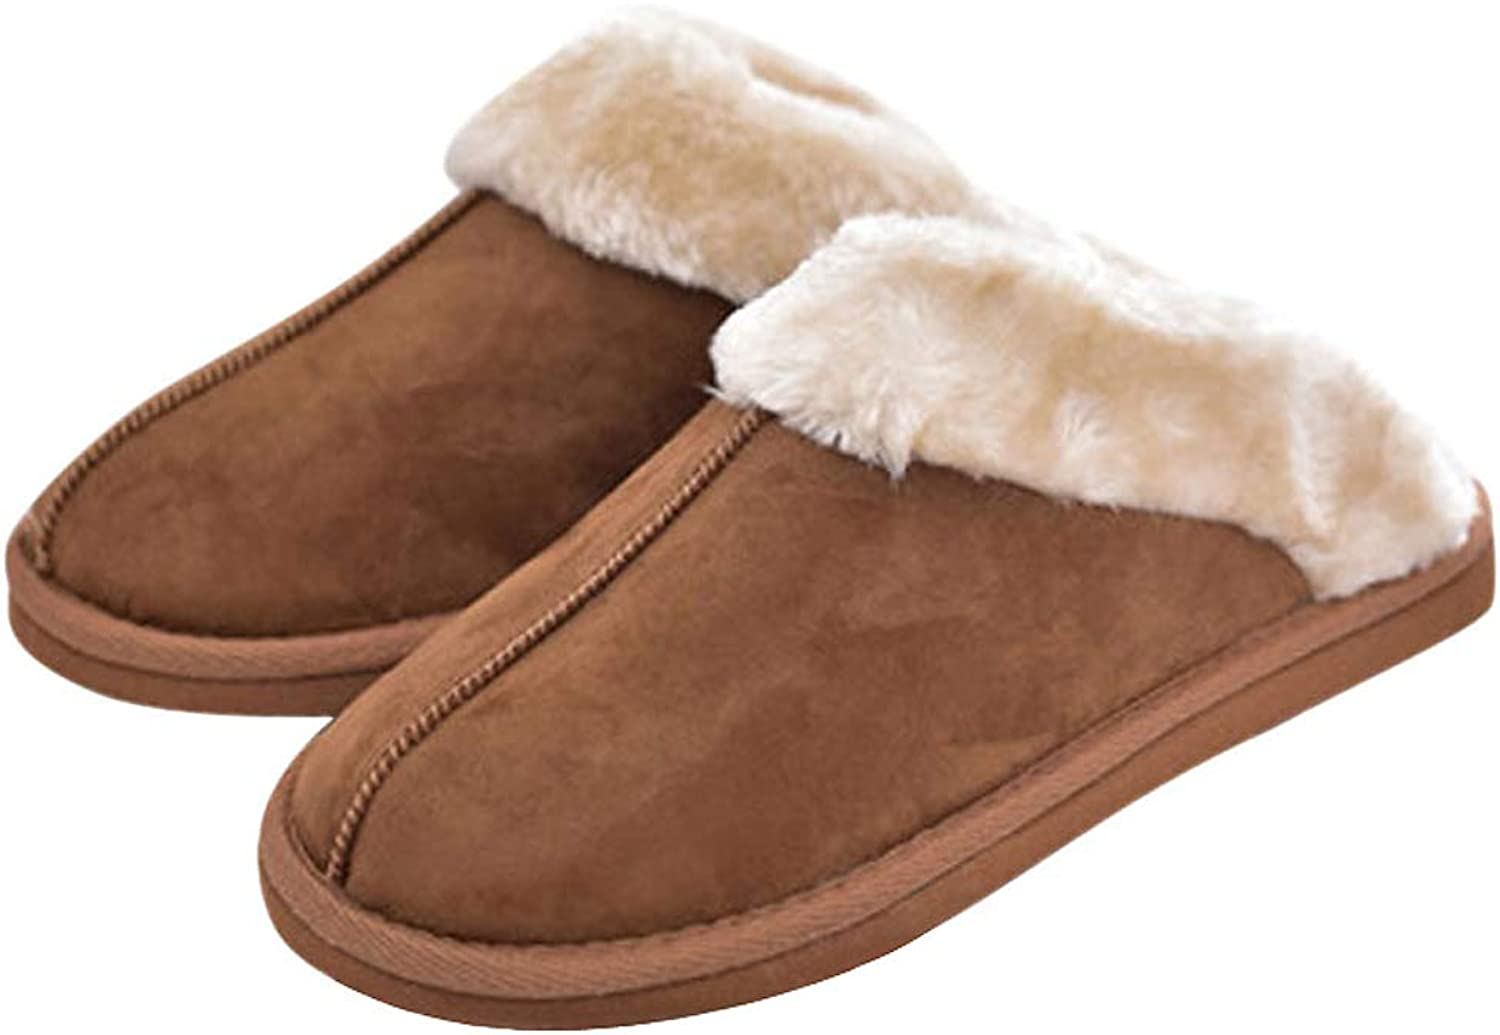 ALOTUS Unisex Memory Foam Slippers with Warm Thick Fur Indoor Outdoor